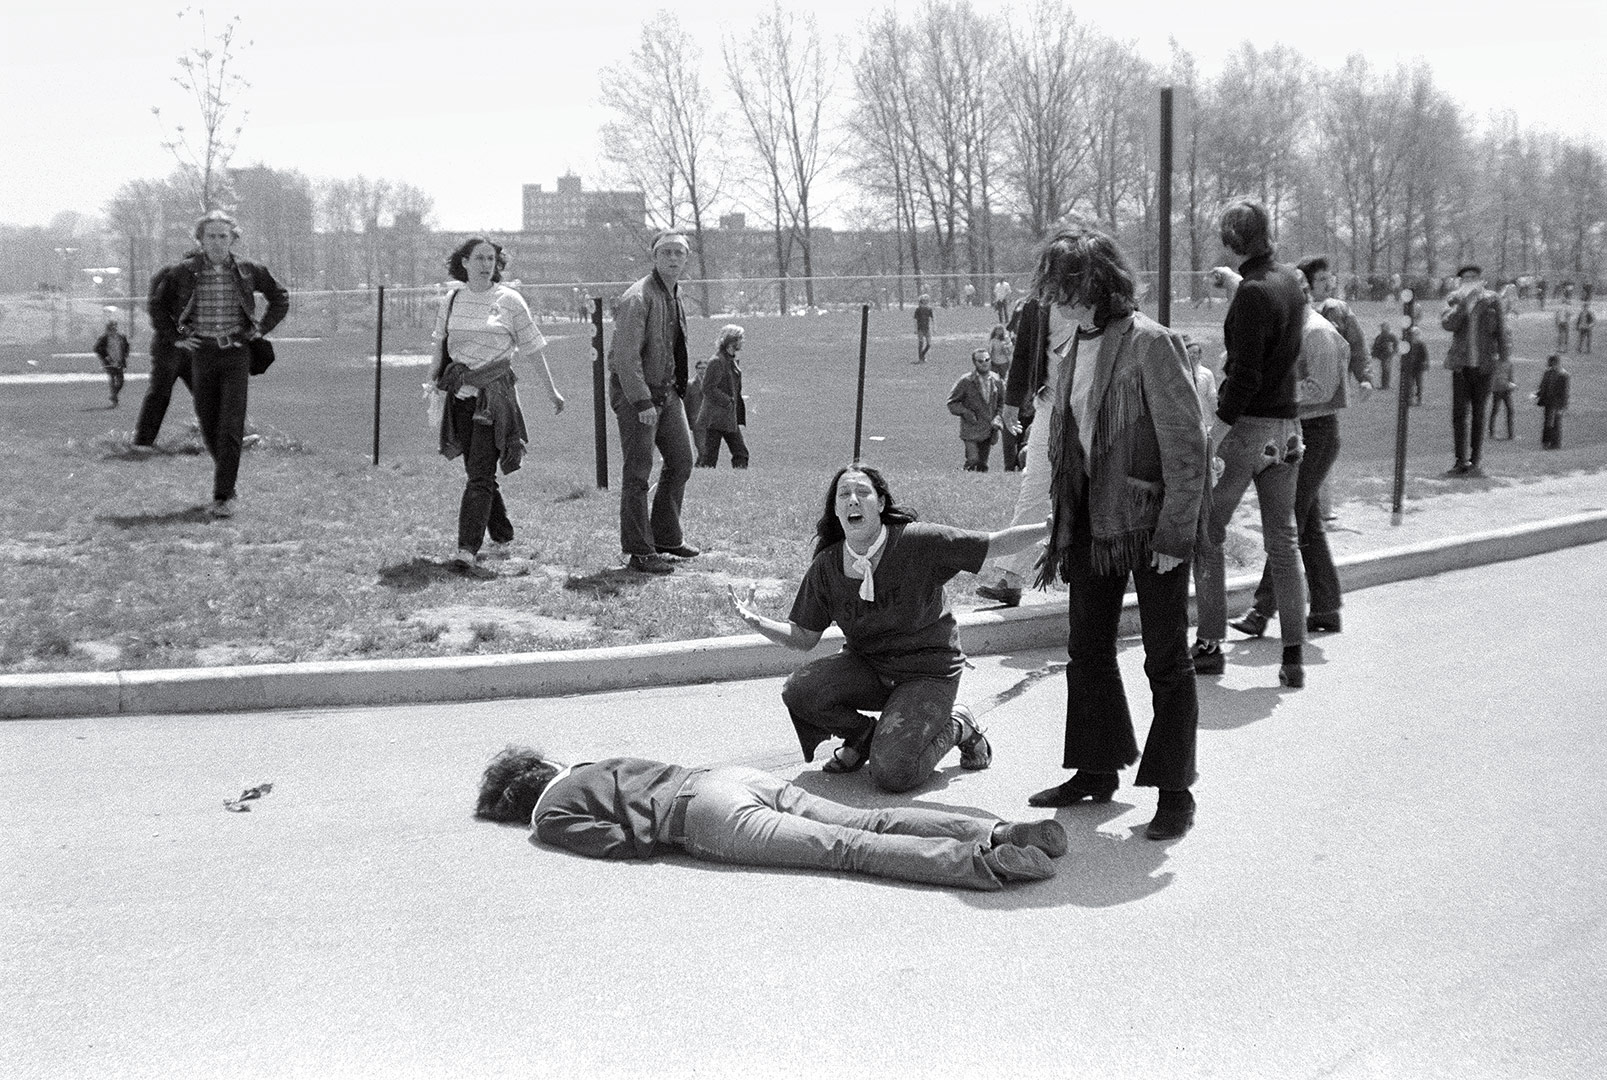 time-100-influential-photos-john-paul-filo-kent-state-shootings-65.jpg